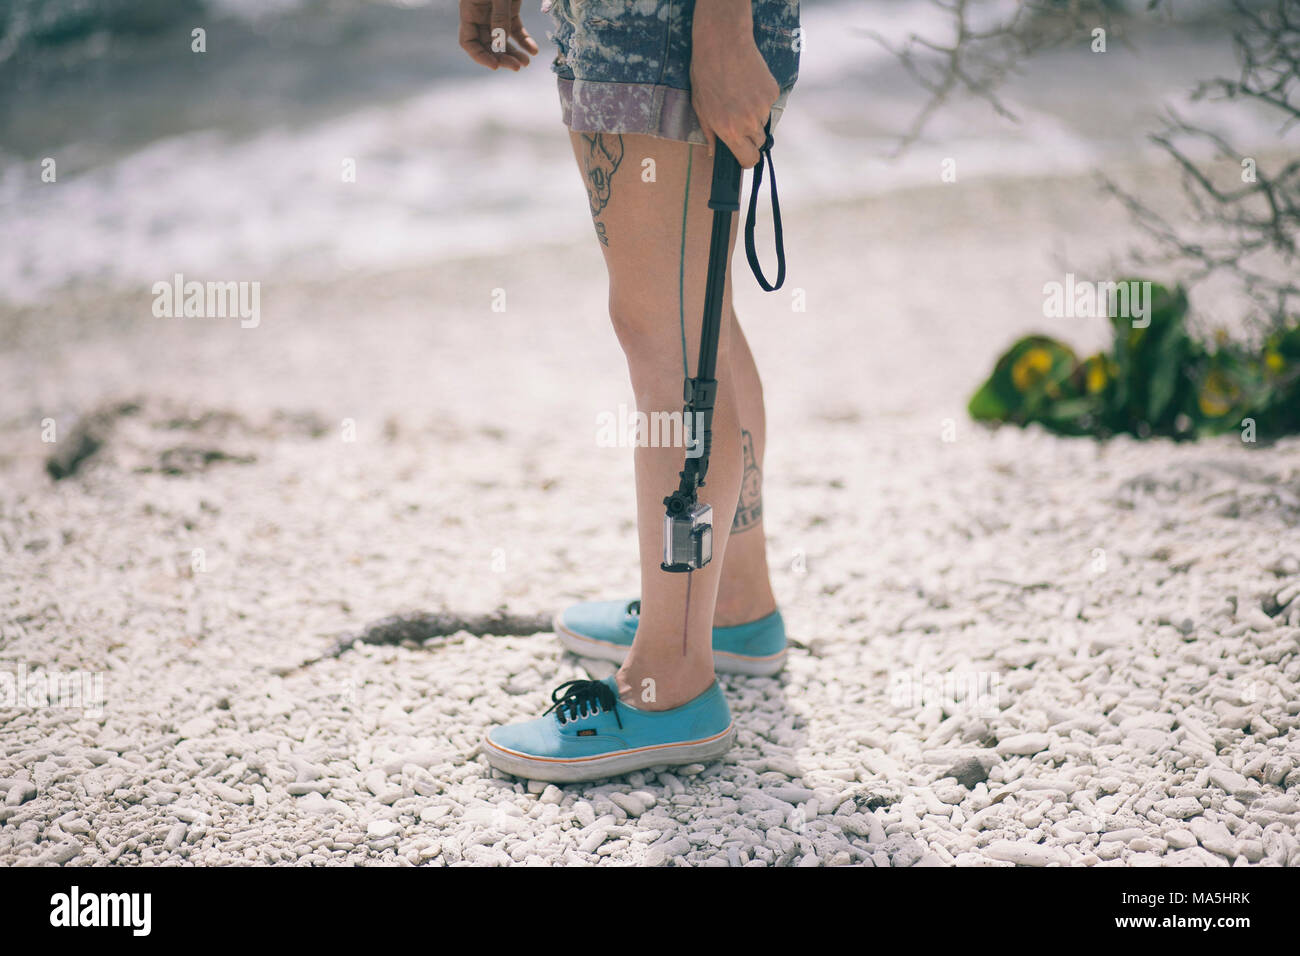 tourist tattooed girl hanging a subaquatic GoPro on the beach with shorts and tennis shoes - Stock Image